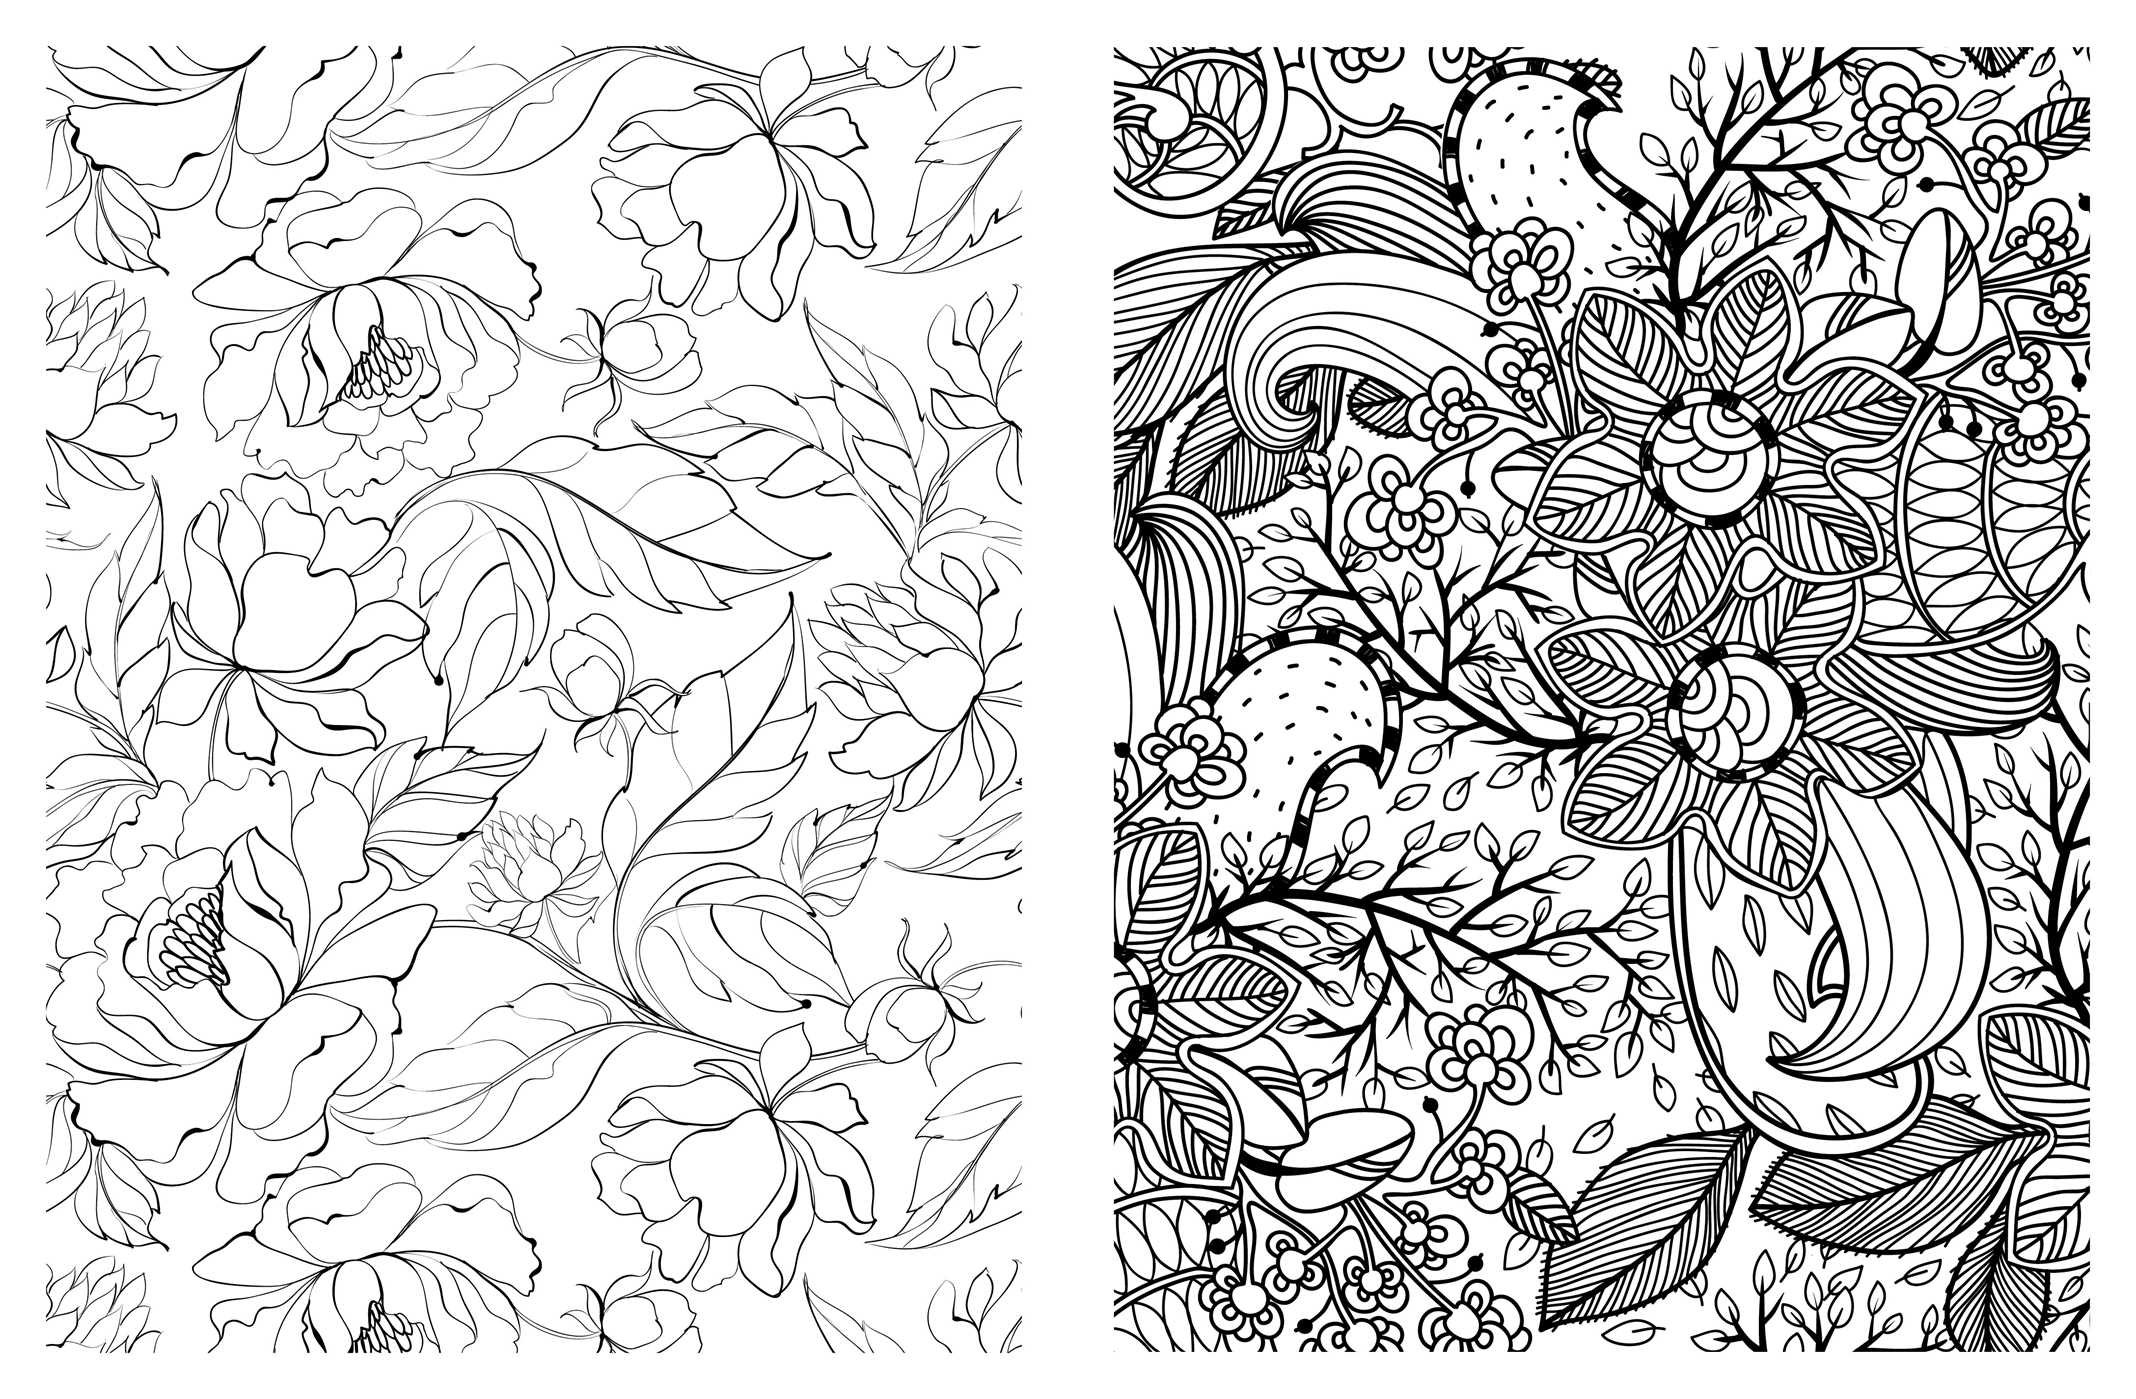 amazoncom posh adult coloring book pretty designs for fun relaxation posh coloring books 9781449458751 andrews mcmeel publishing books - Adults Coloring Books